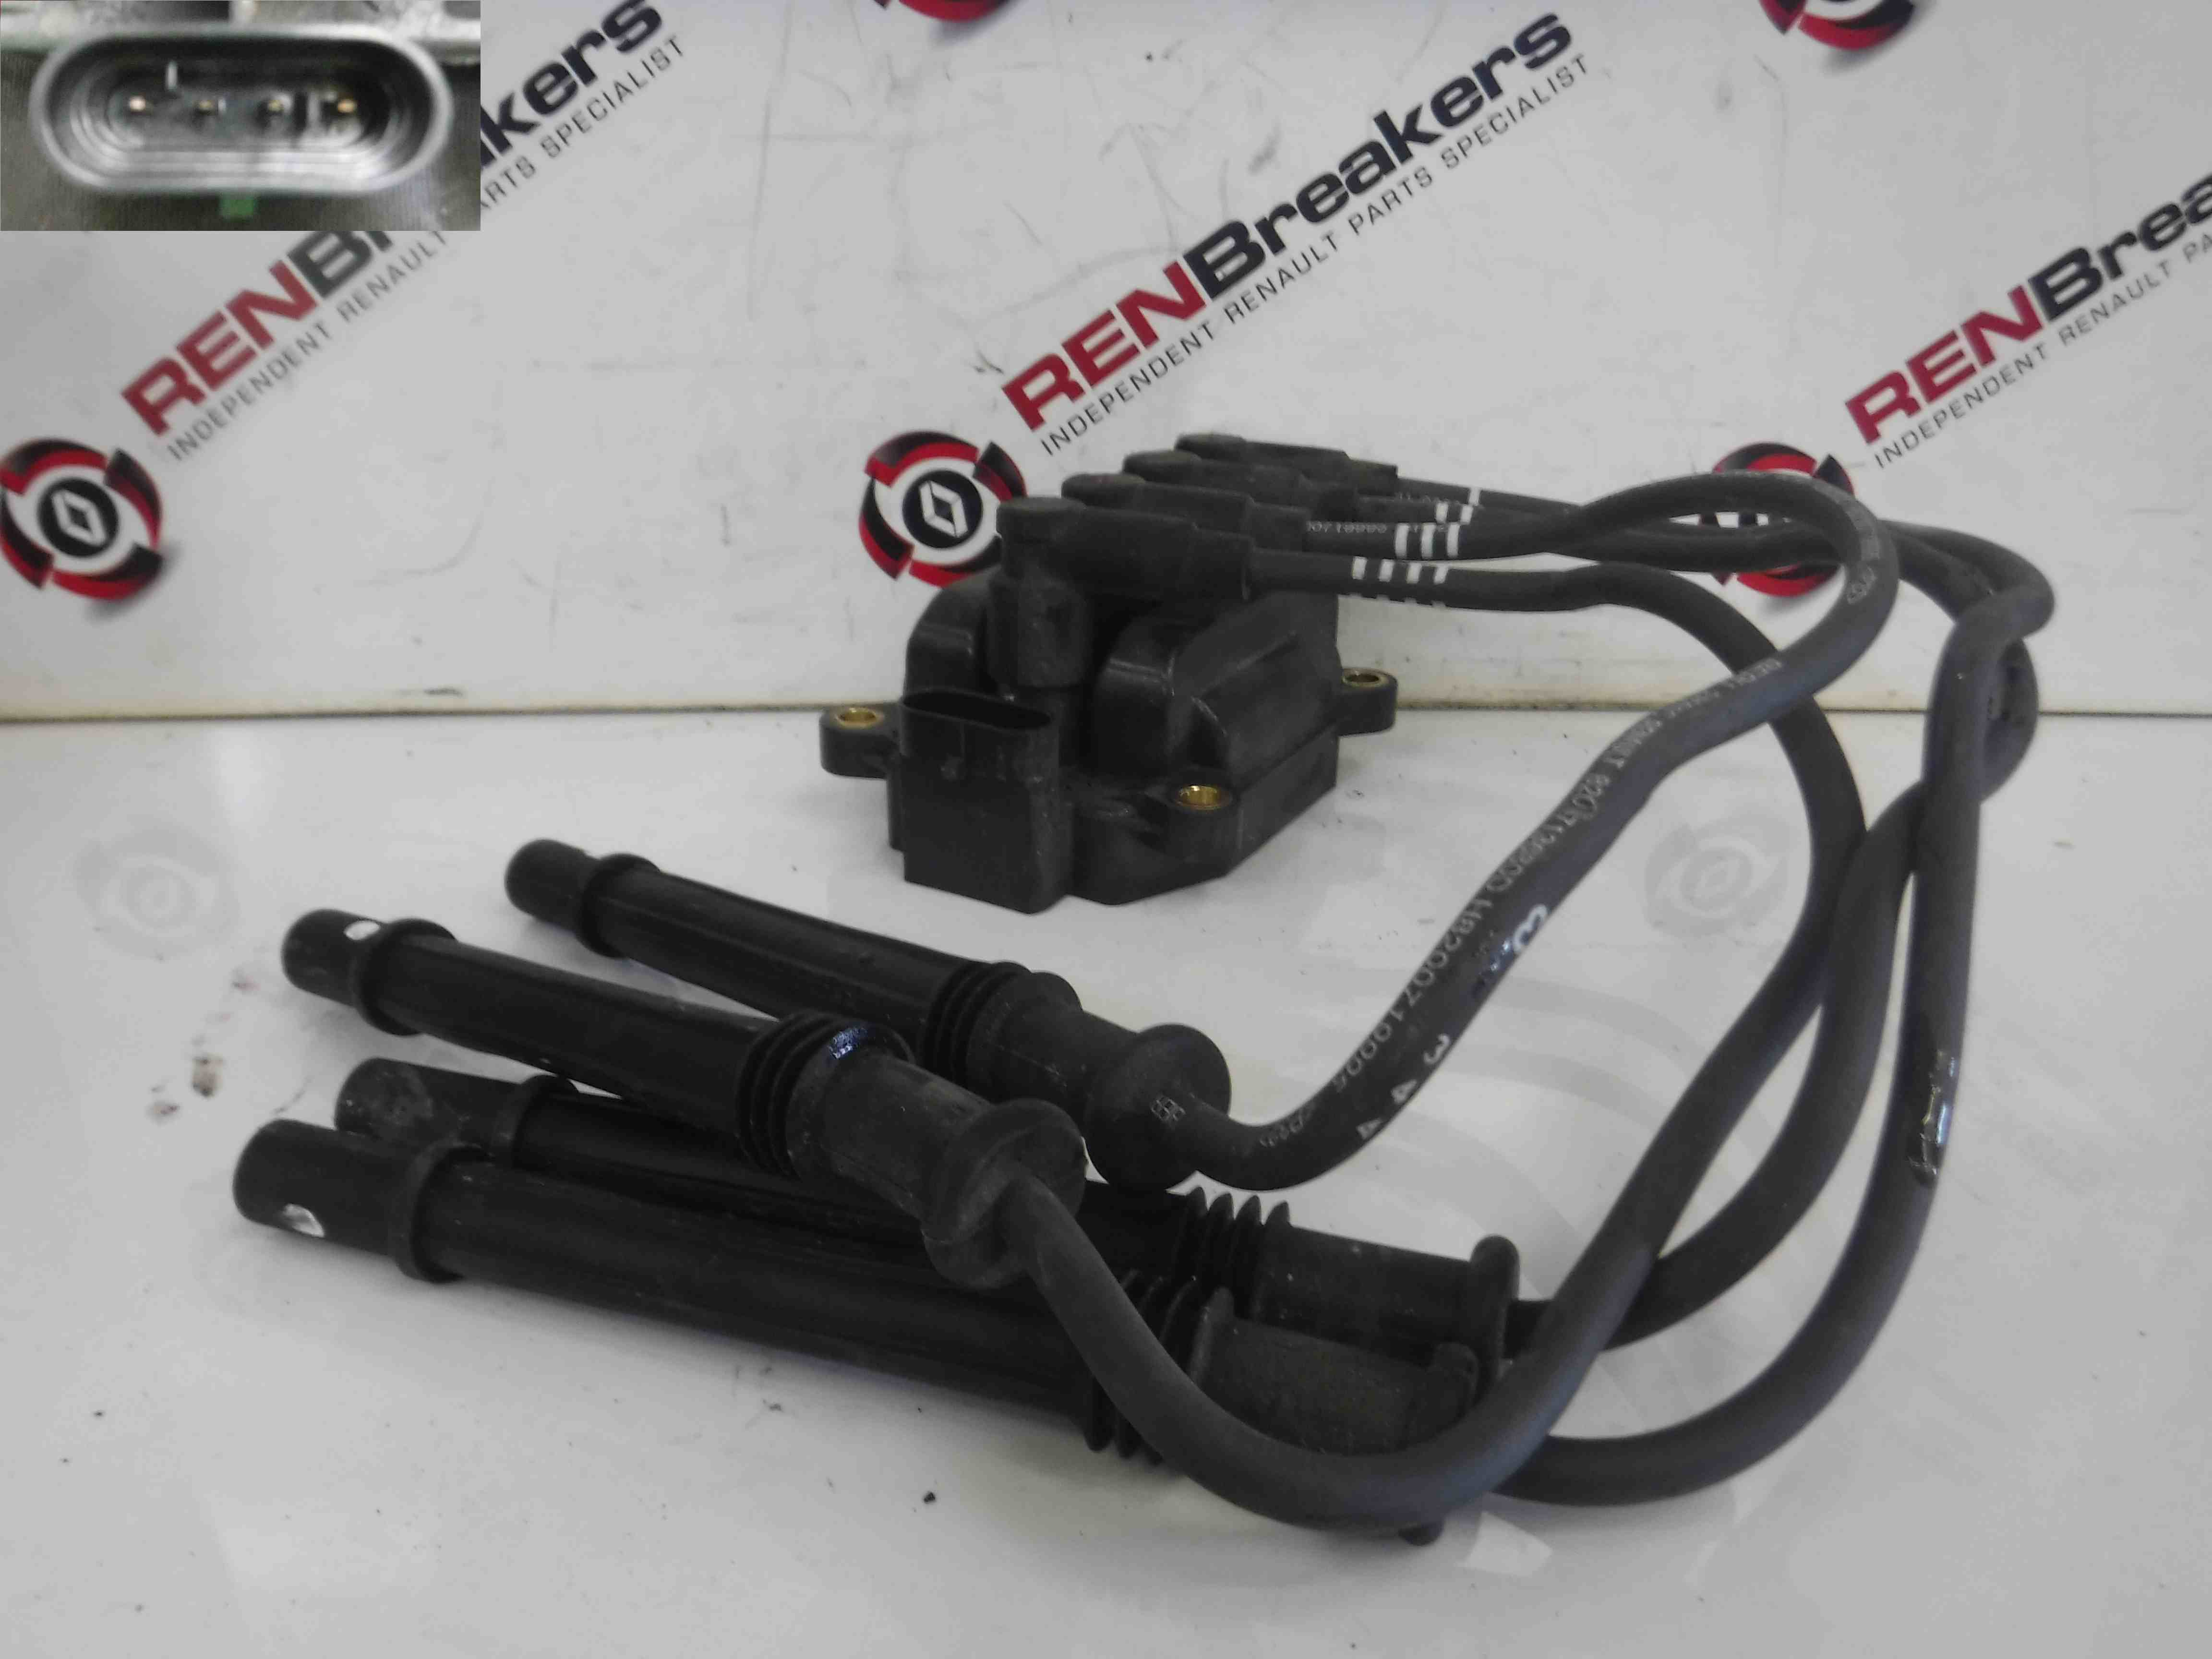 Renault Clio MK4 2013-2017 1.2 16v Ignition Coil Pack + Leads 8200702693